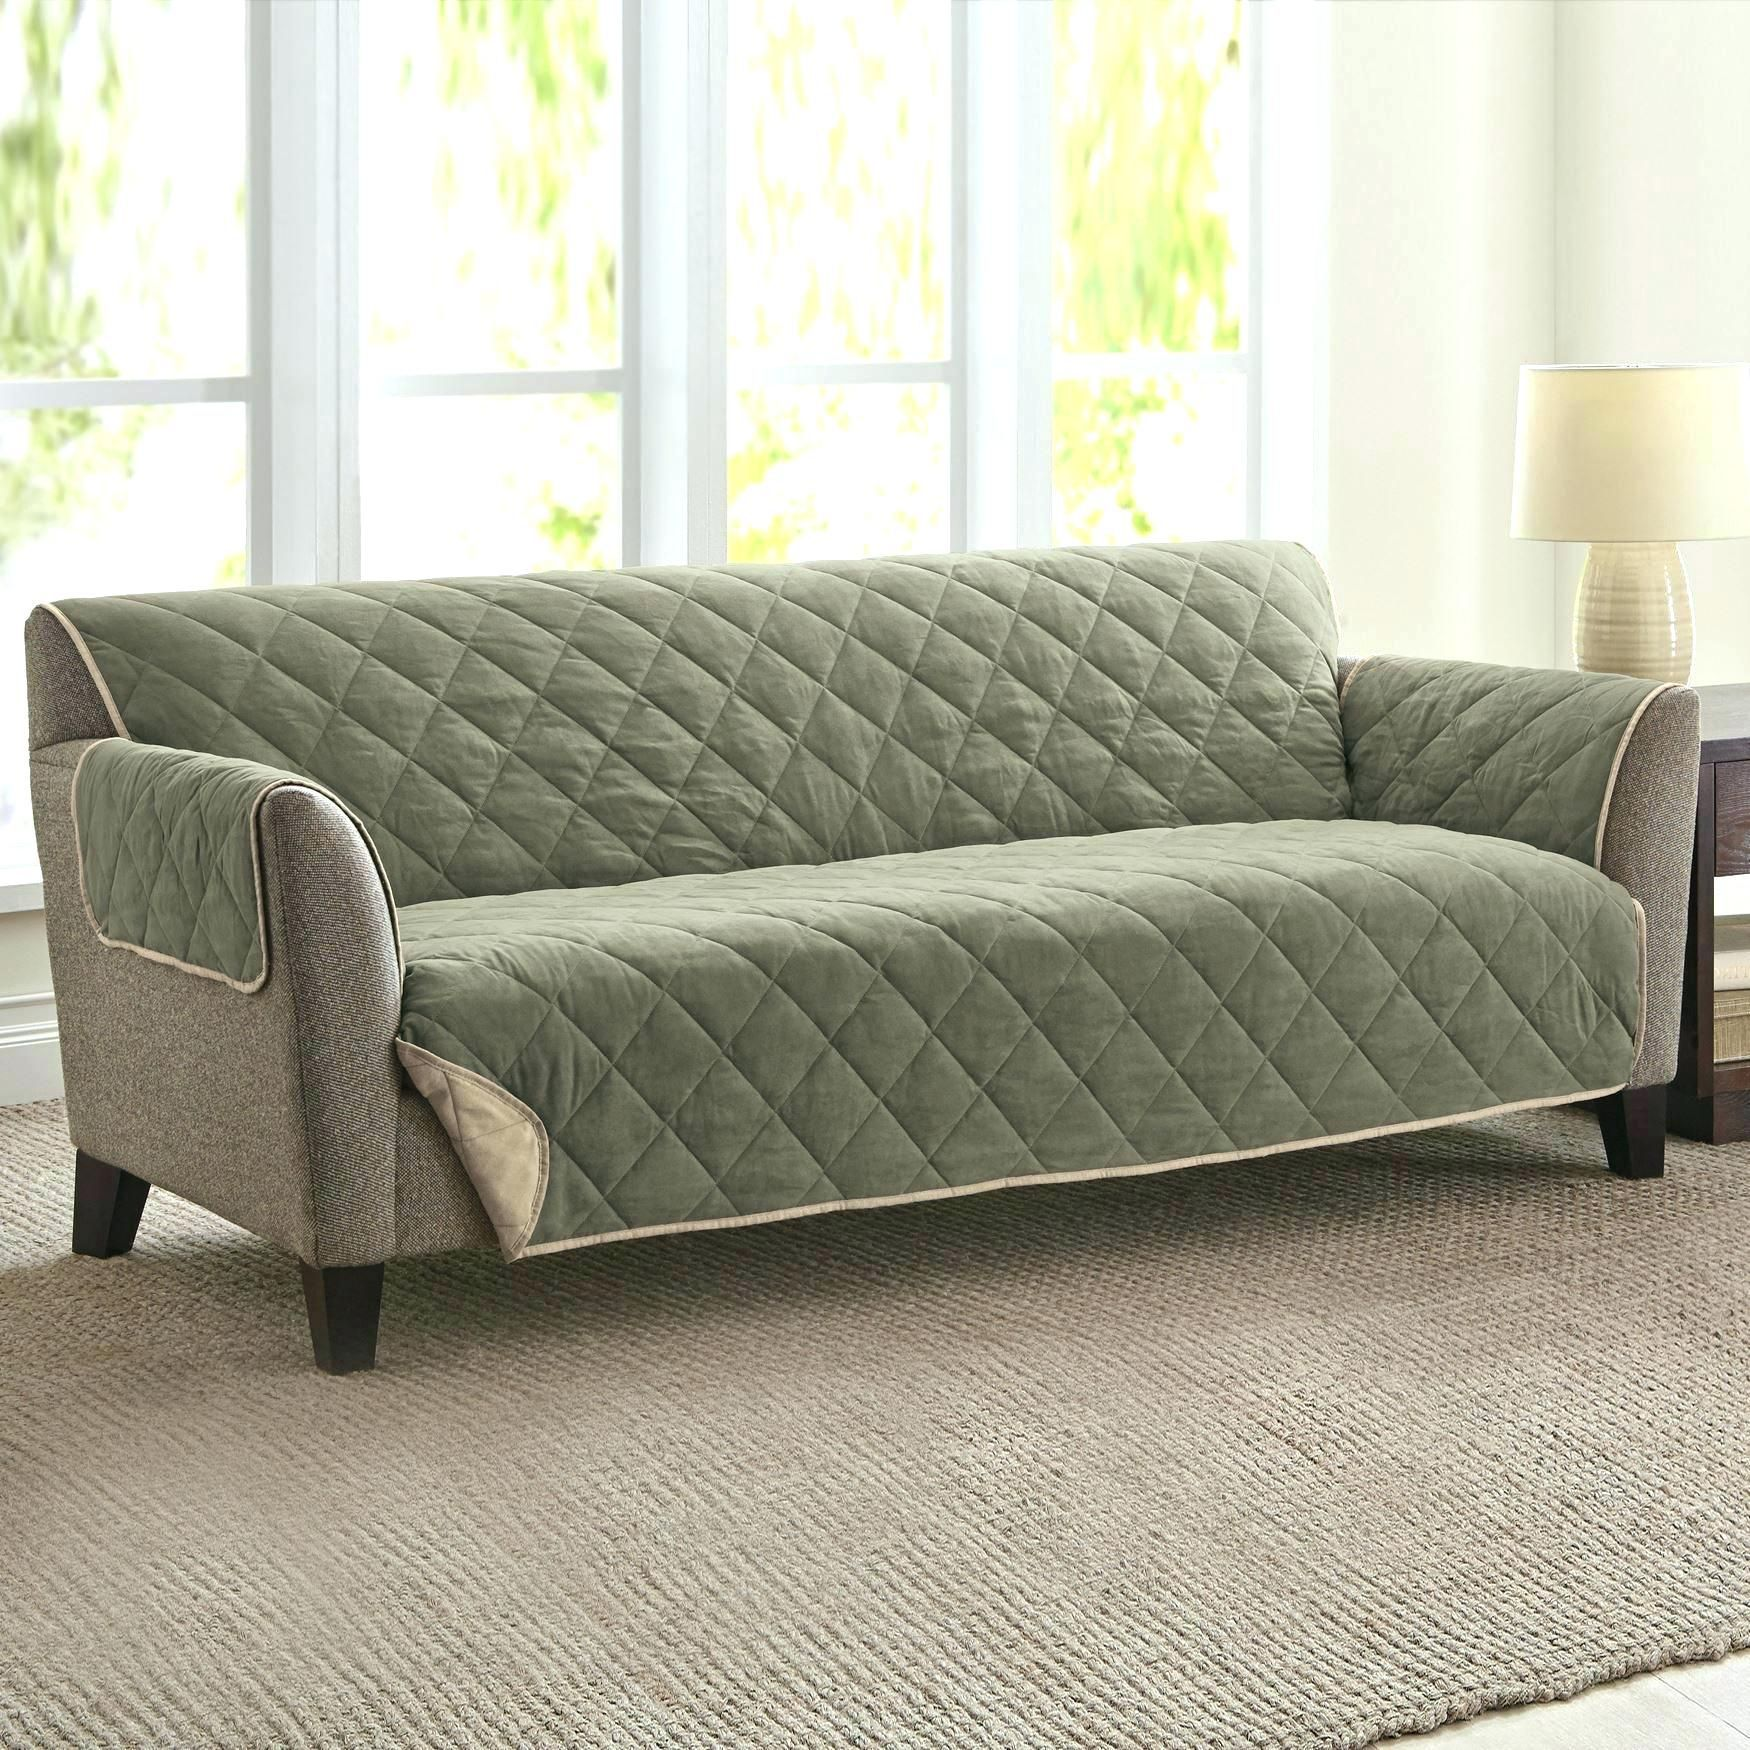 10 Best Sofa Cover For Leather Couch Elegant And Stunning Best